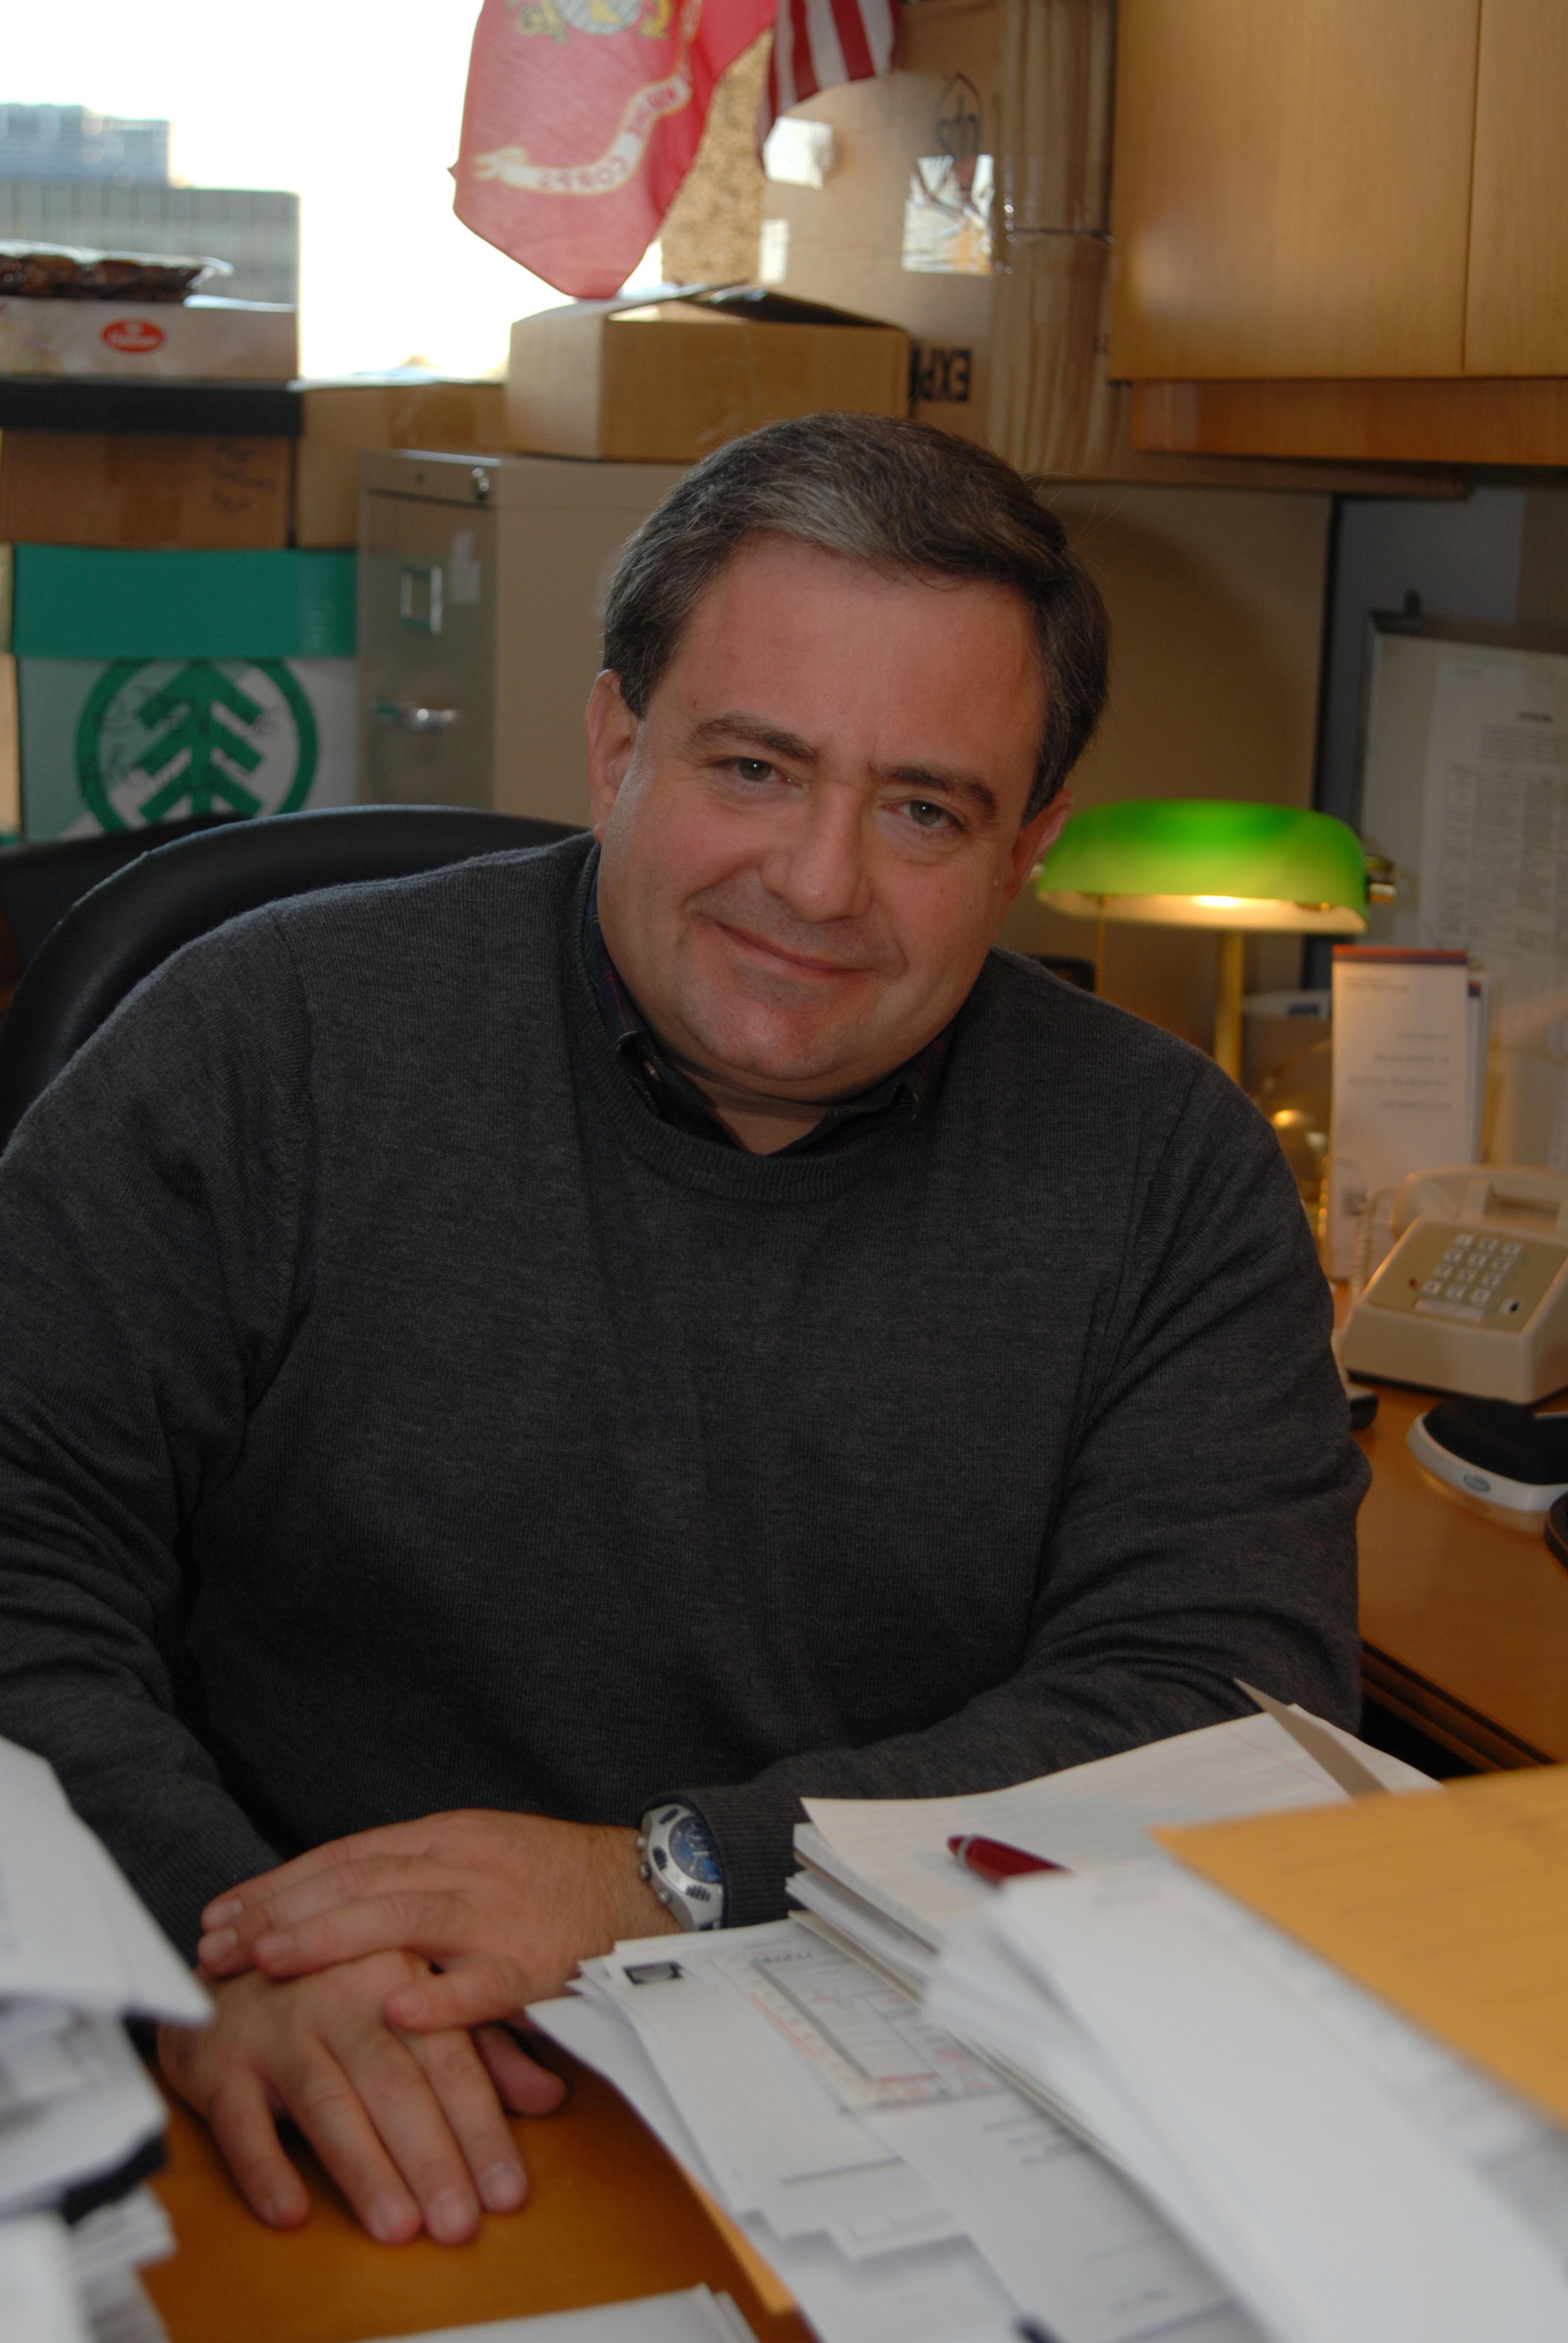 A profile-picture of Dr. Elias Carayannis, Dr. Elias G. Carayannis is Full Professor of Science, Technology, Innovation and Entrepreneurship at The George Washington University.